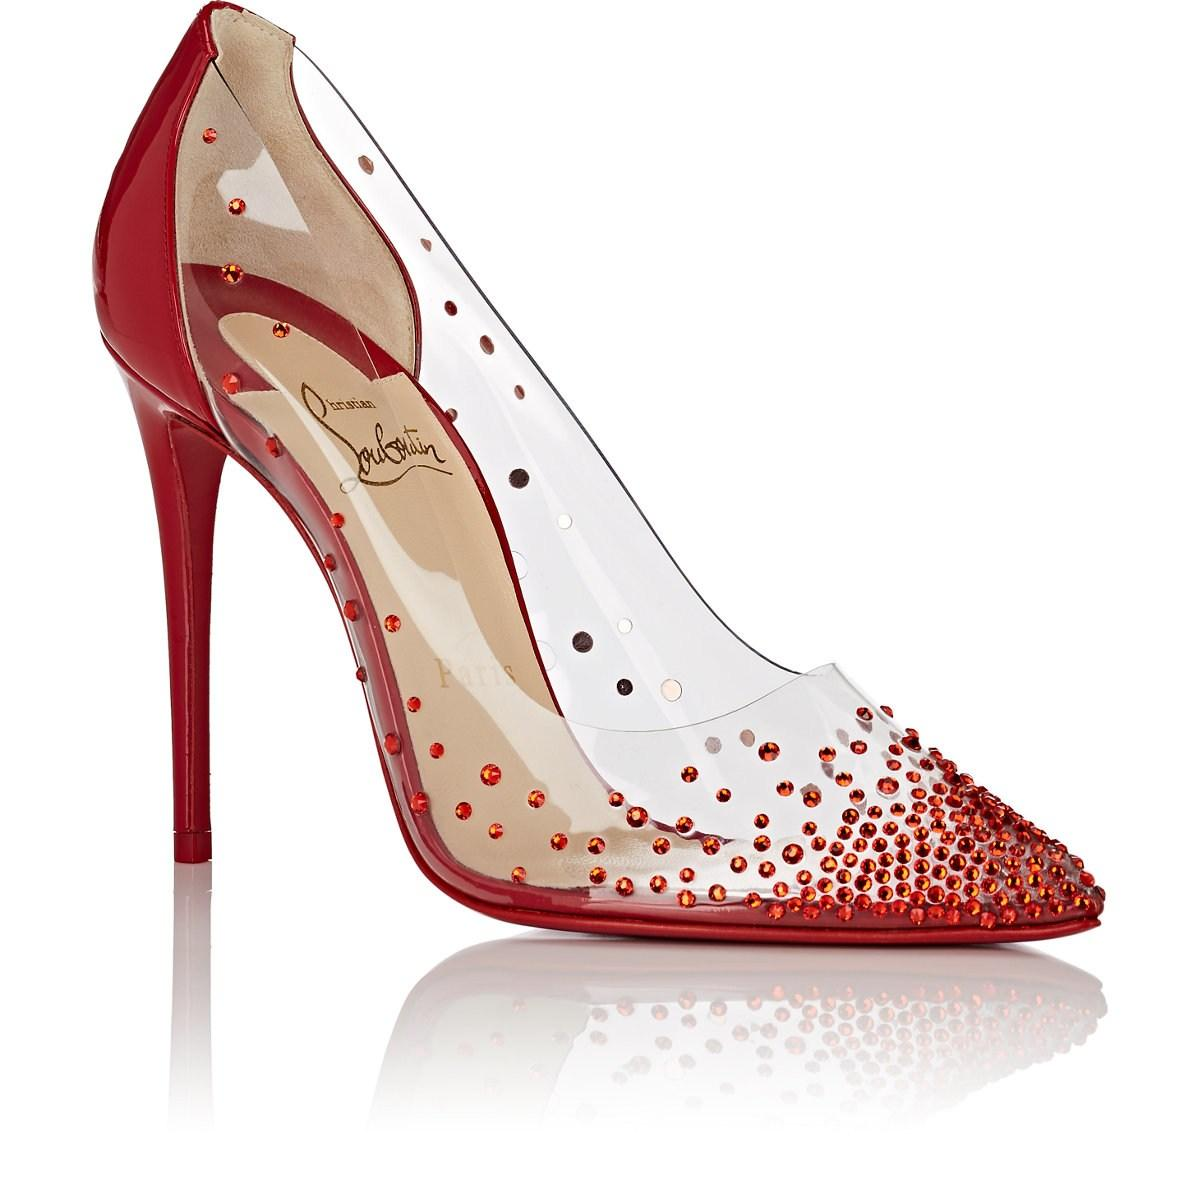 47d5726524b2 Christian Louboutin - Red Degrastrass Pvc   Patent Leather Pumps - Lyst.  View fullscreen